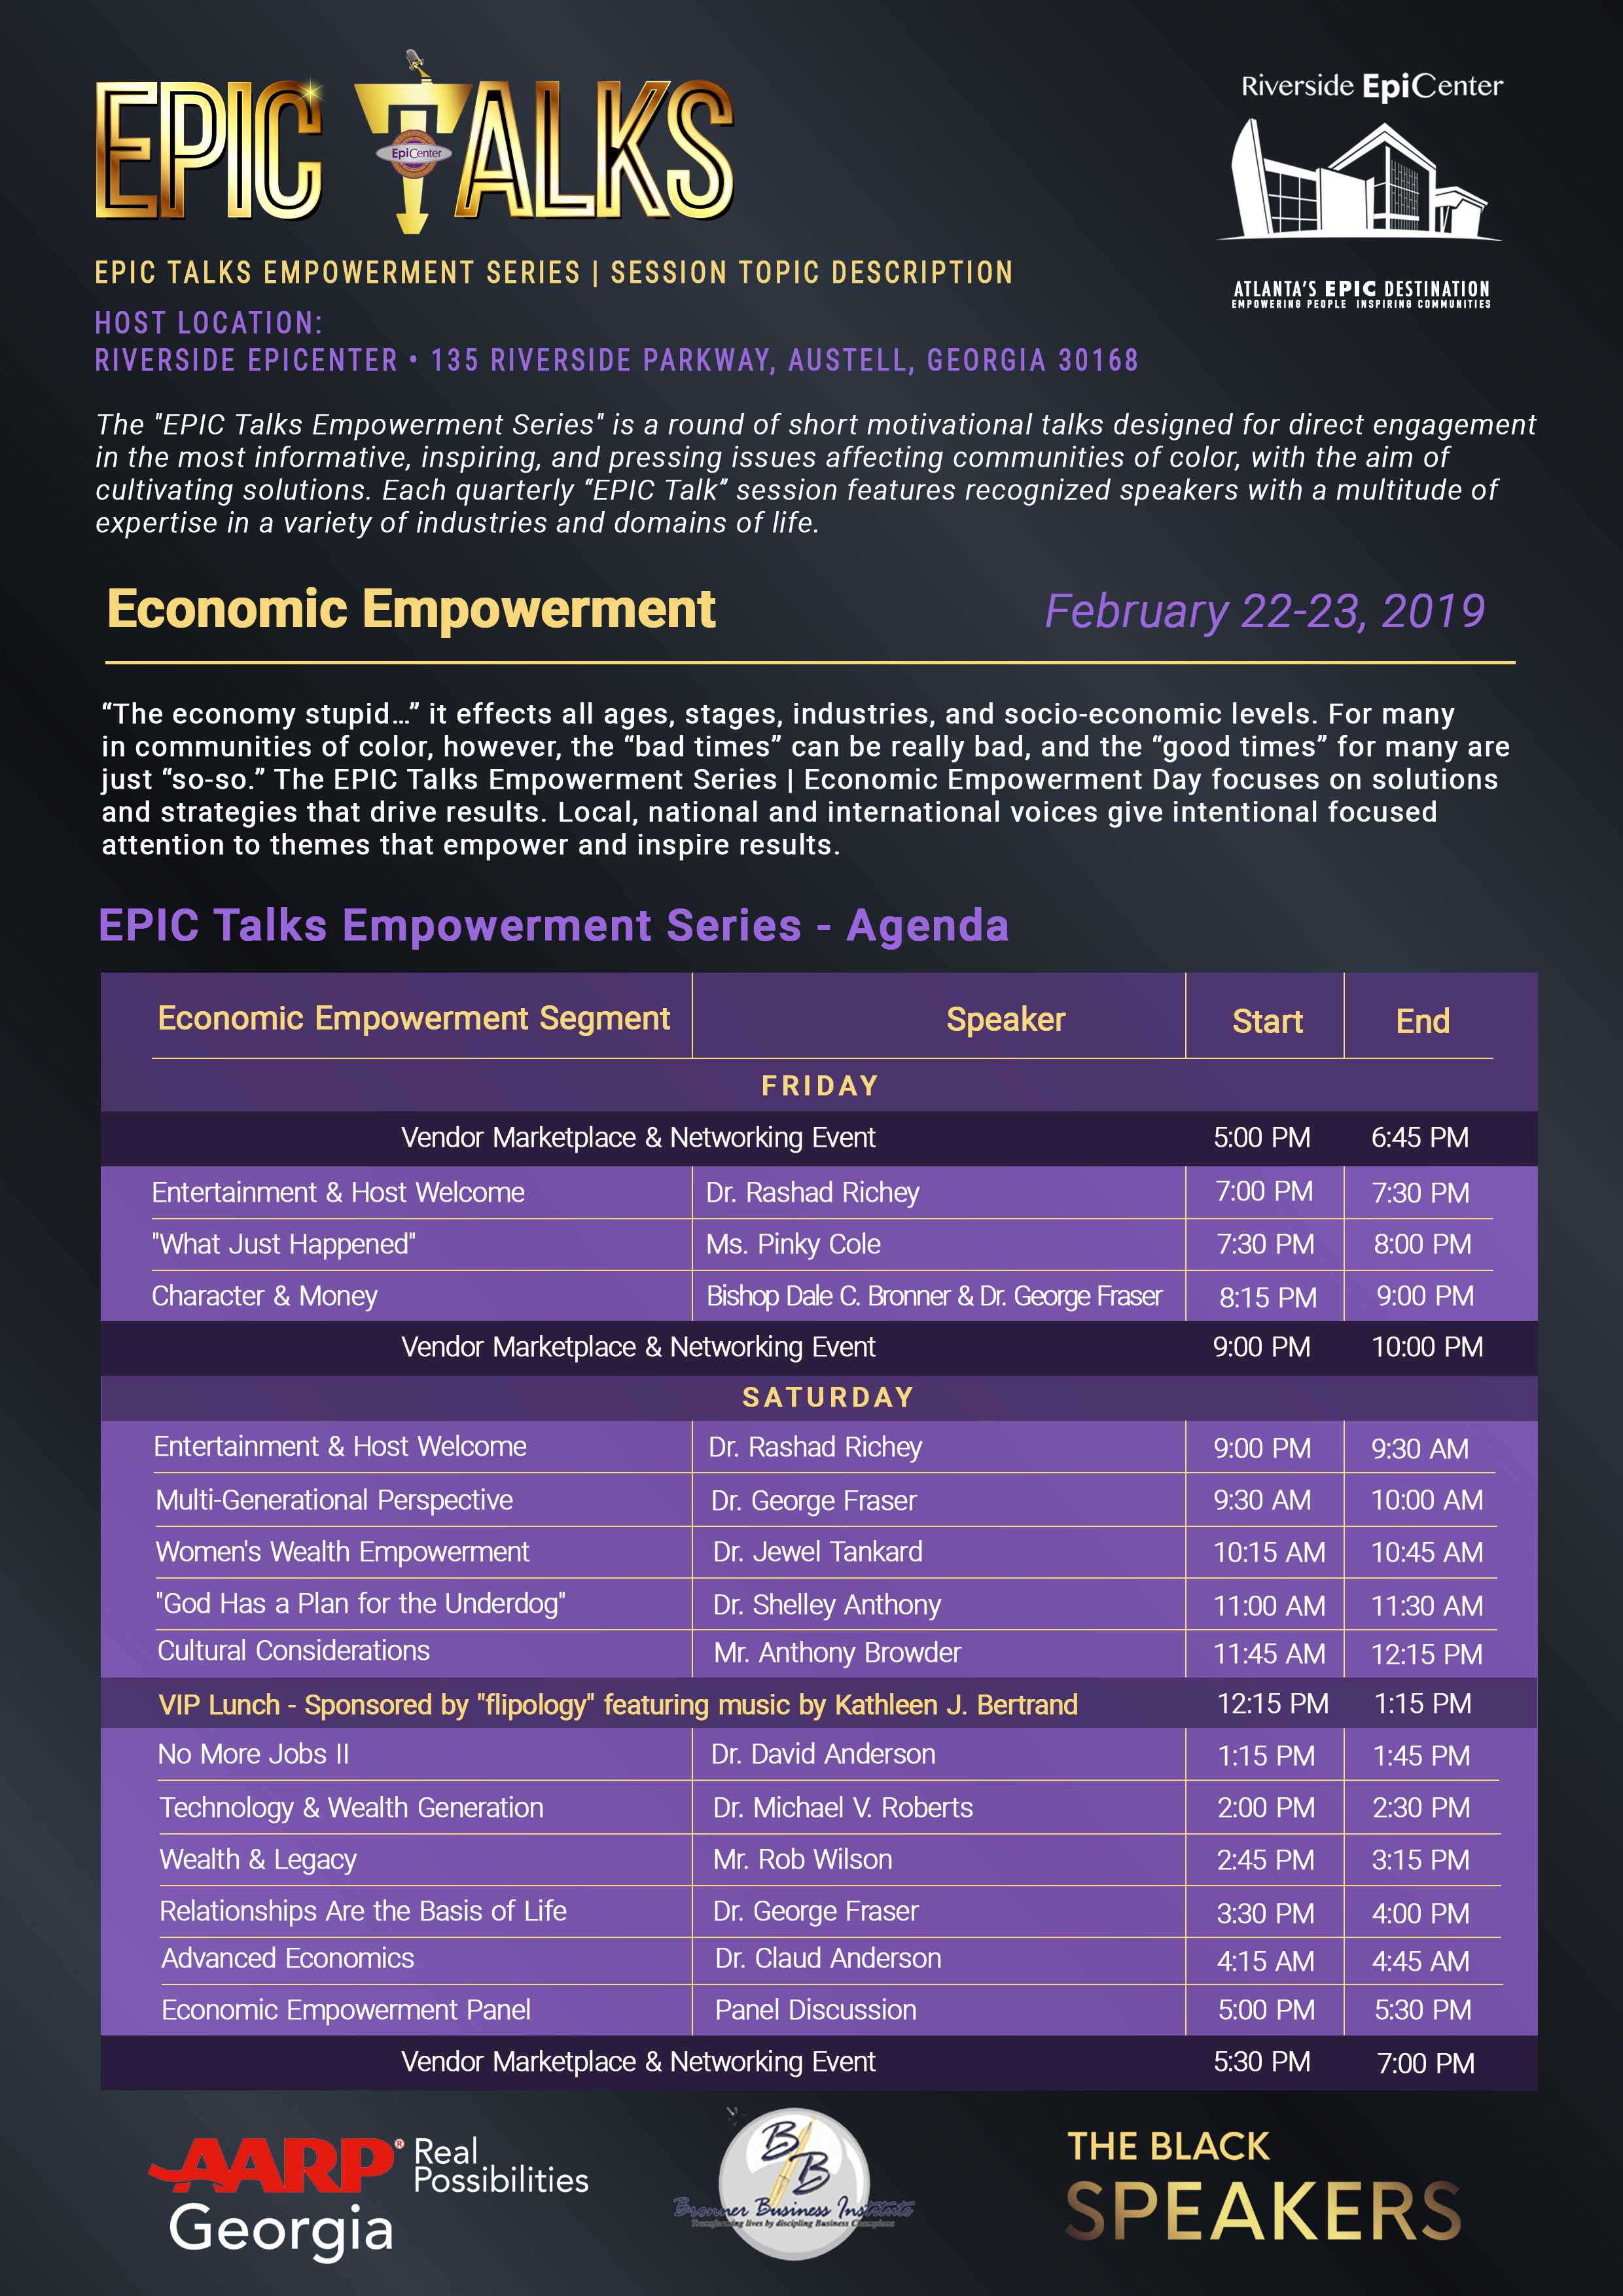 EPIC Talks Economic Empowerment Agenda